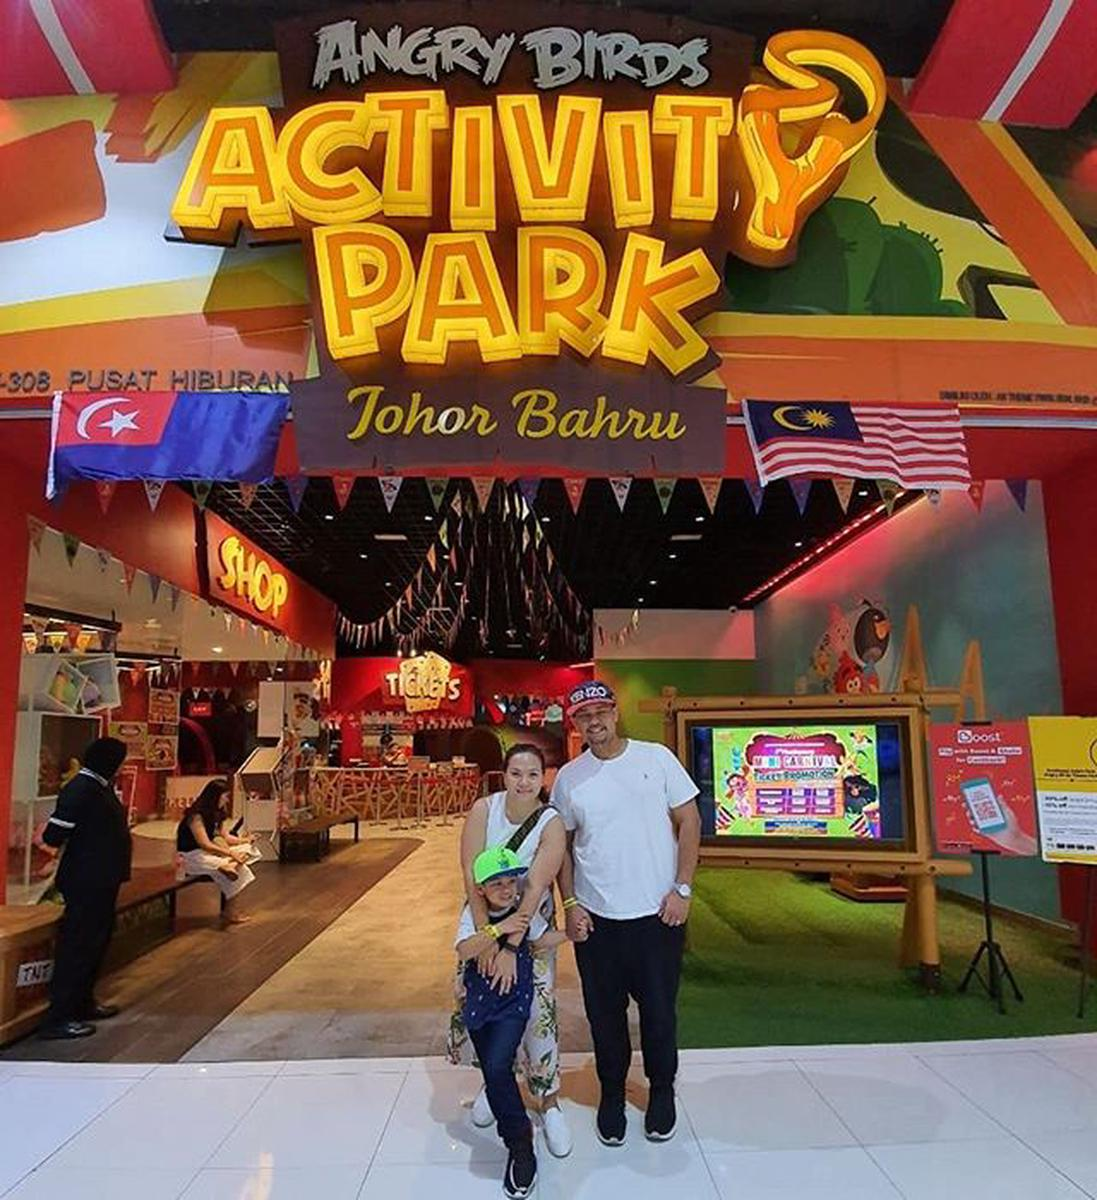 Angry Birds Activity Park Ticket in Johor Bahru - Klook